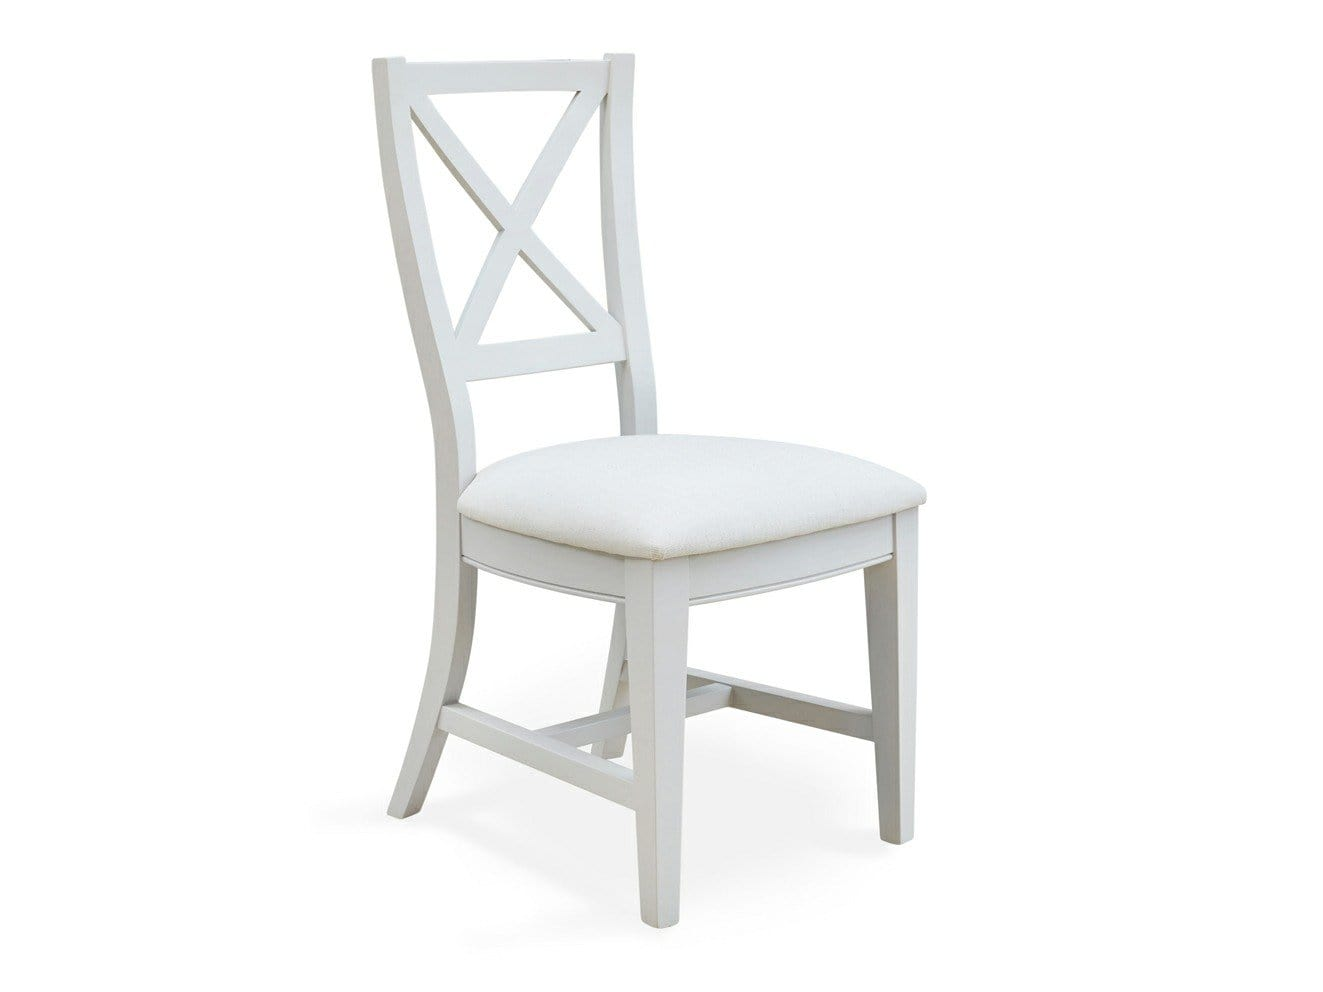 Grey painted dining chairs with solid wood frame and comfortable, cushioned seat pads.